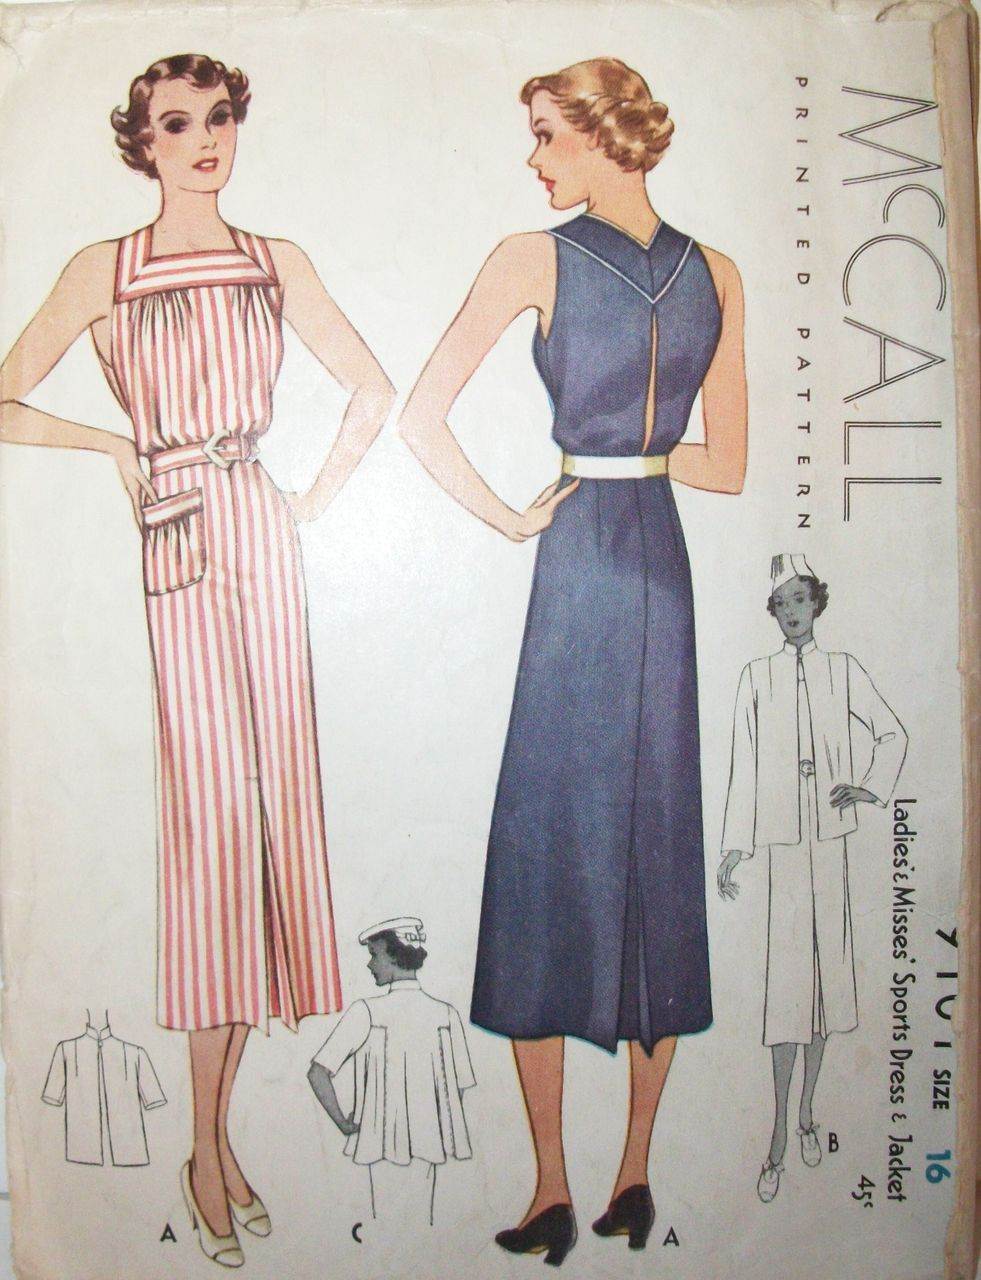 Vintage 1930s Dress & Swing Jacket Printed Sewing Pattern ...